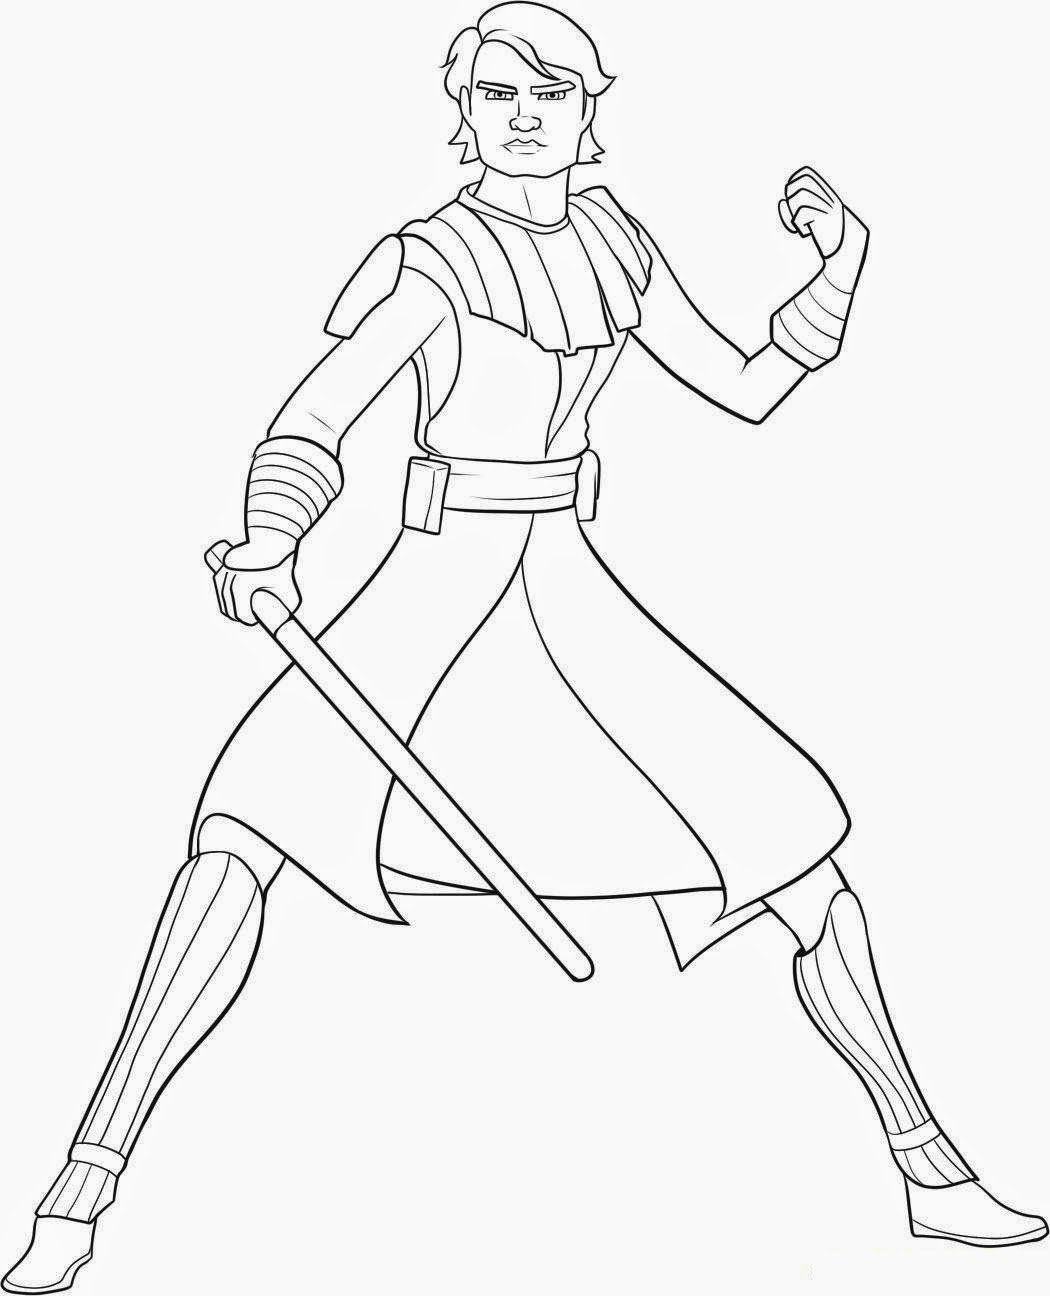 Anakin Skywalker Coloring Page Beautiful Free Star Wars Coloring Pages Anakin Skywalker For Kids In 2020 Star Wars Colors Star Wars Drawings Star Wars Coloring Book